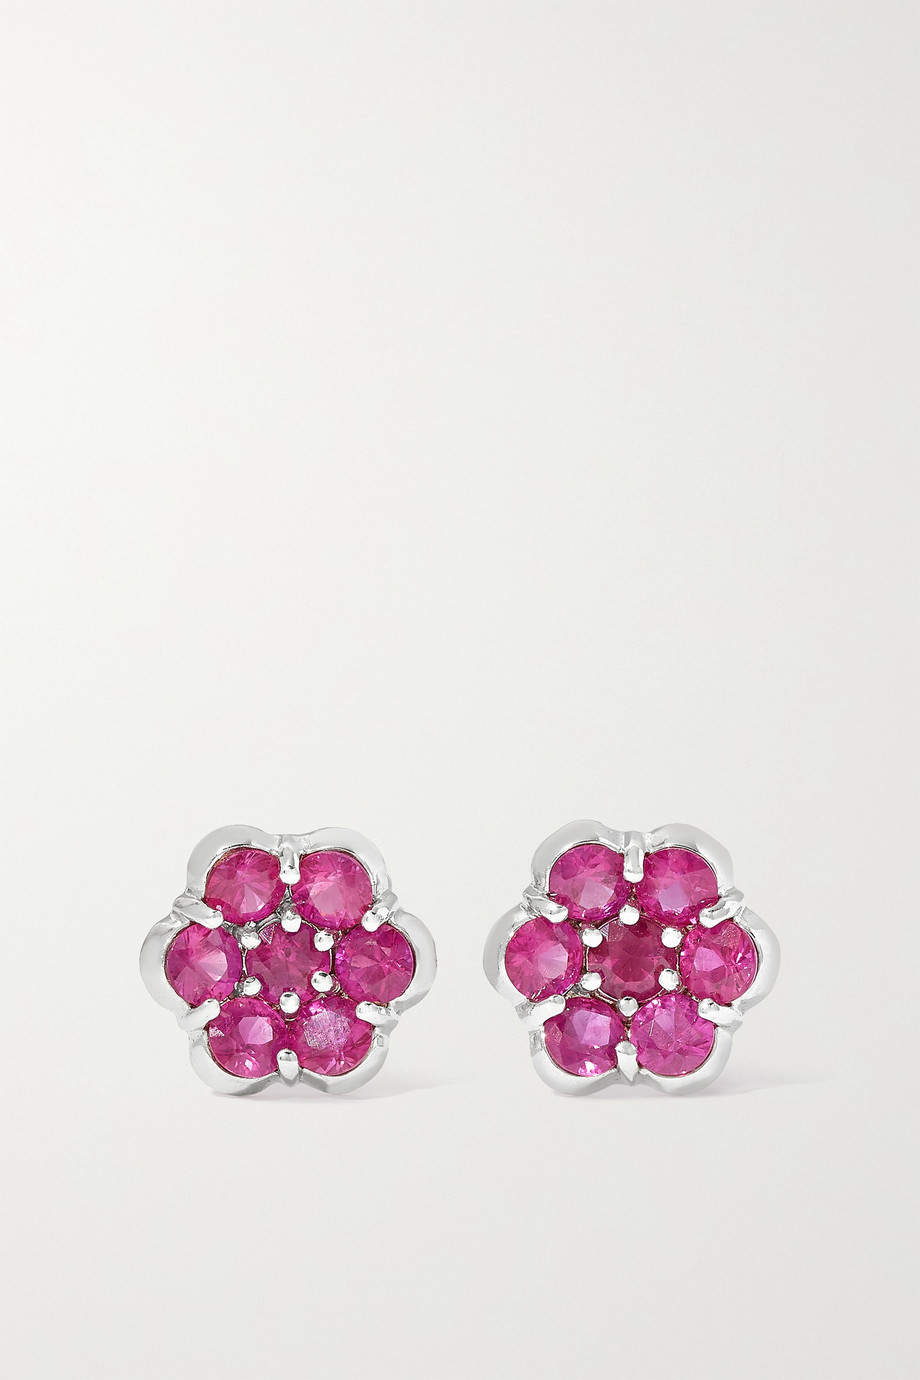 BAYCO Platinum ruby earrings